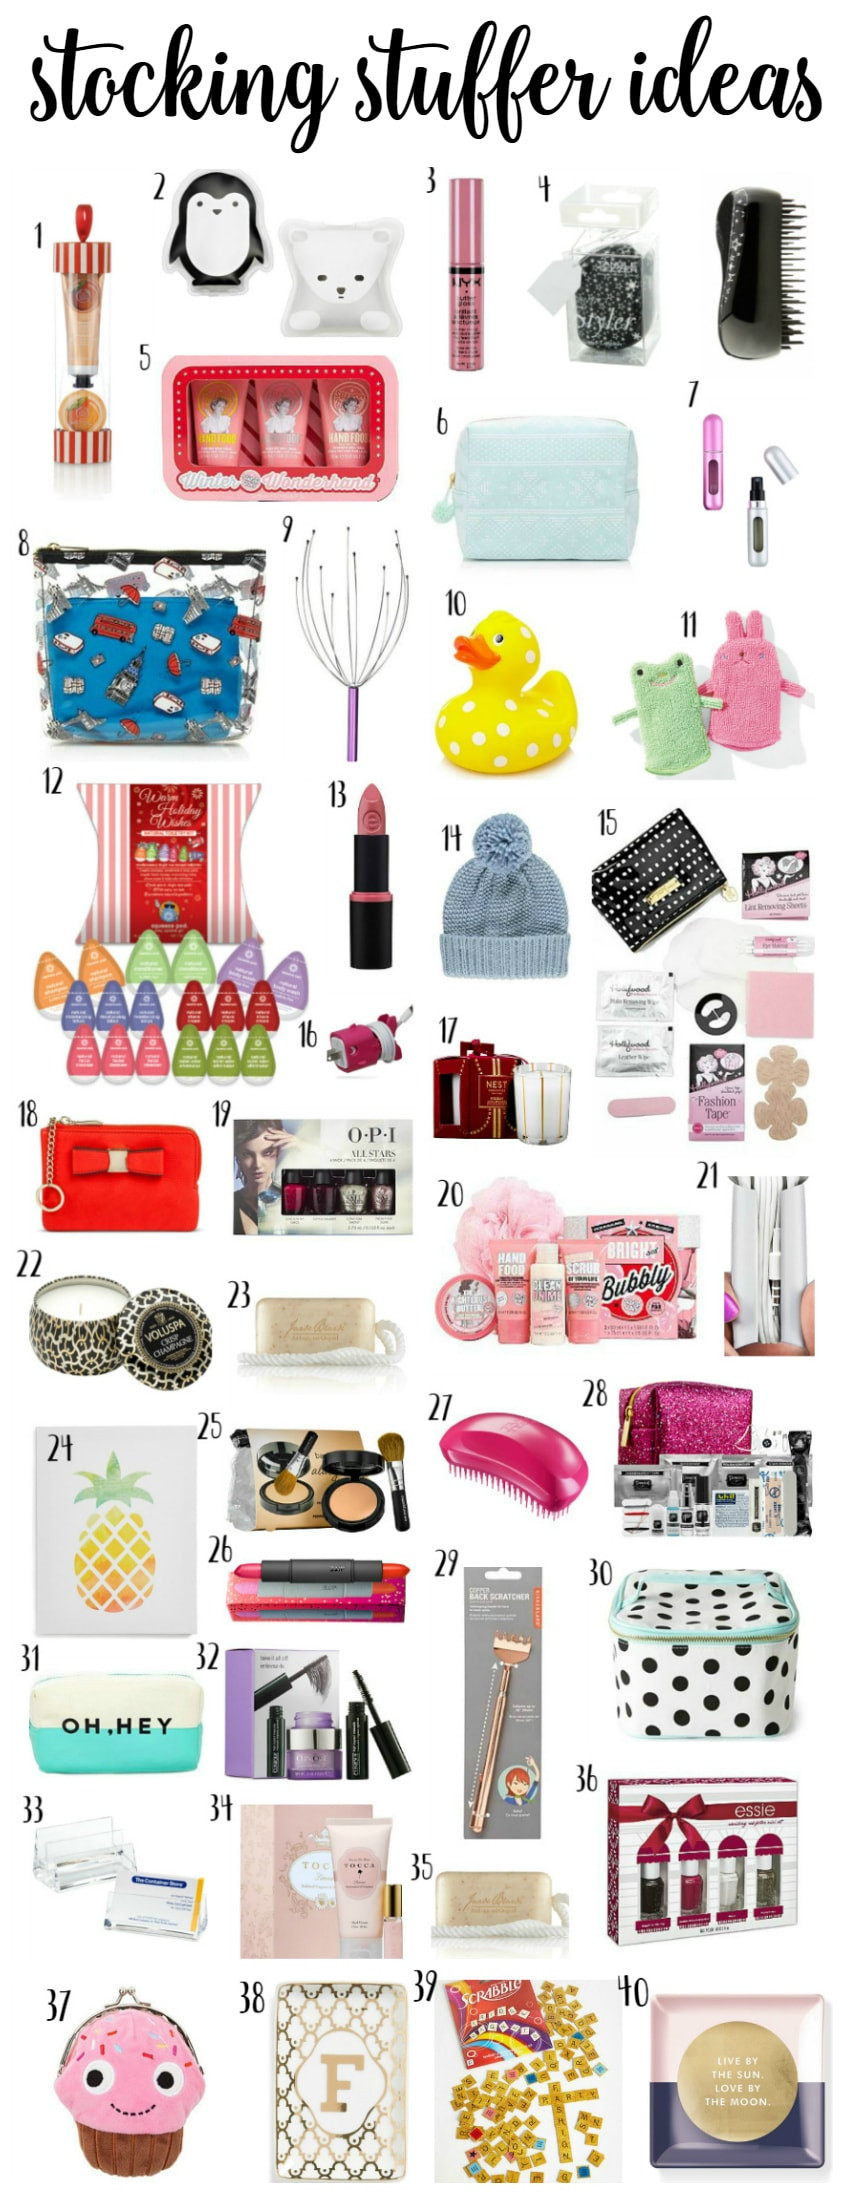 Best ideas about Gift Exchange Ideas $50 . Save or Pin Christmas Stocking Stuffer Ideas Now.